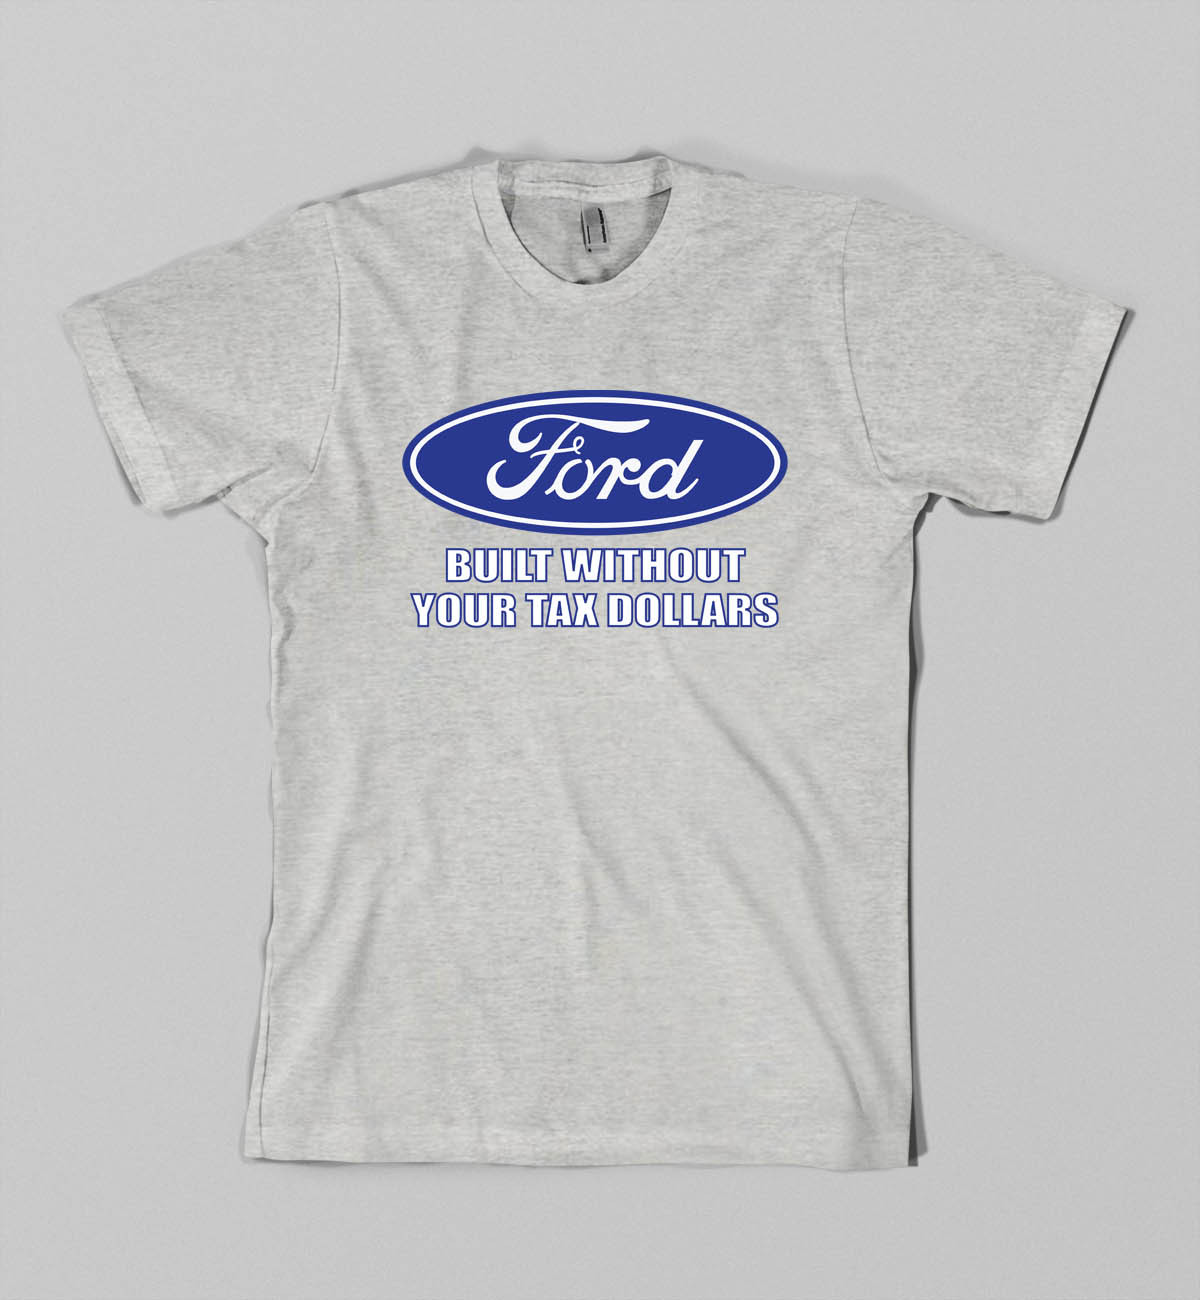 Ford Built without your tax dollars t shirt Adult size Shirts S-3XL Sports gray